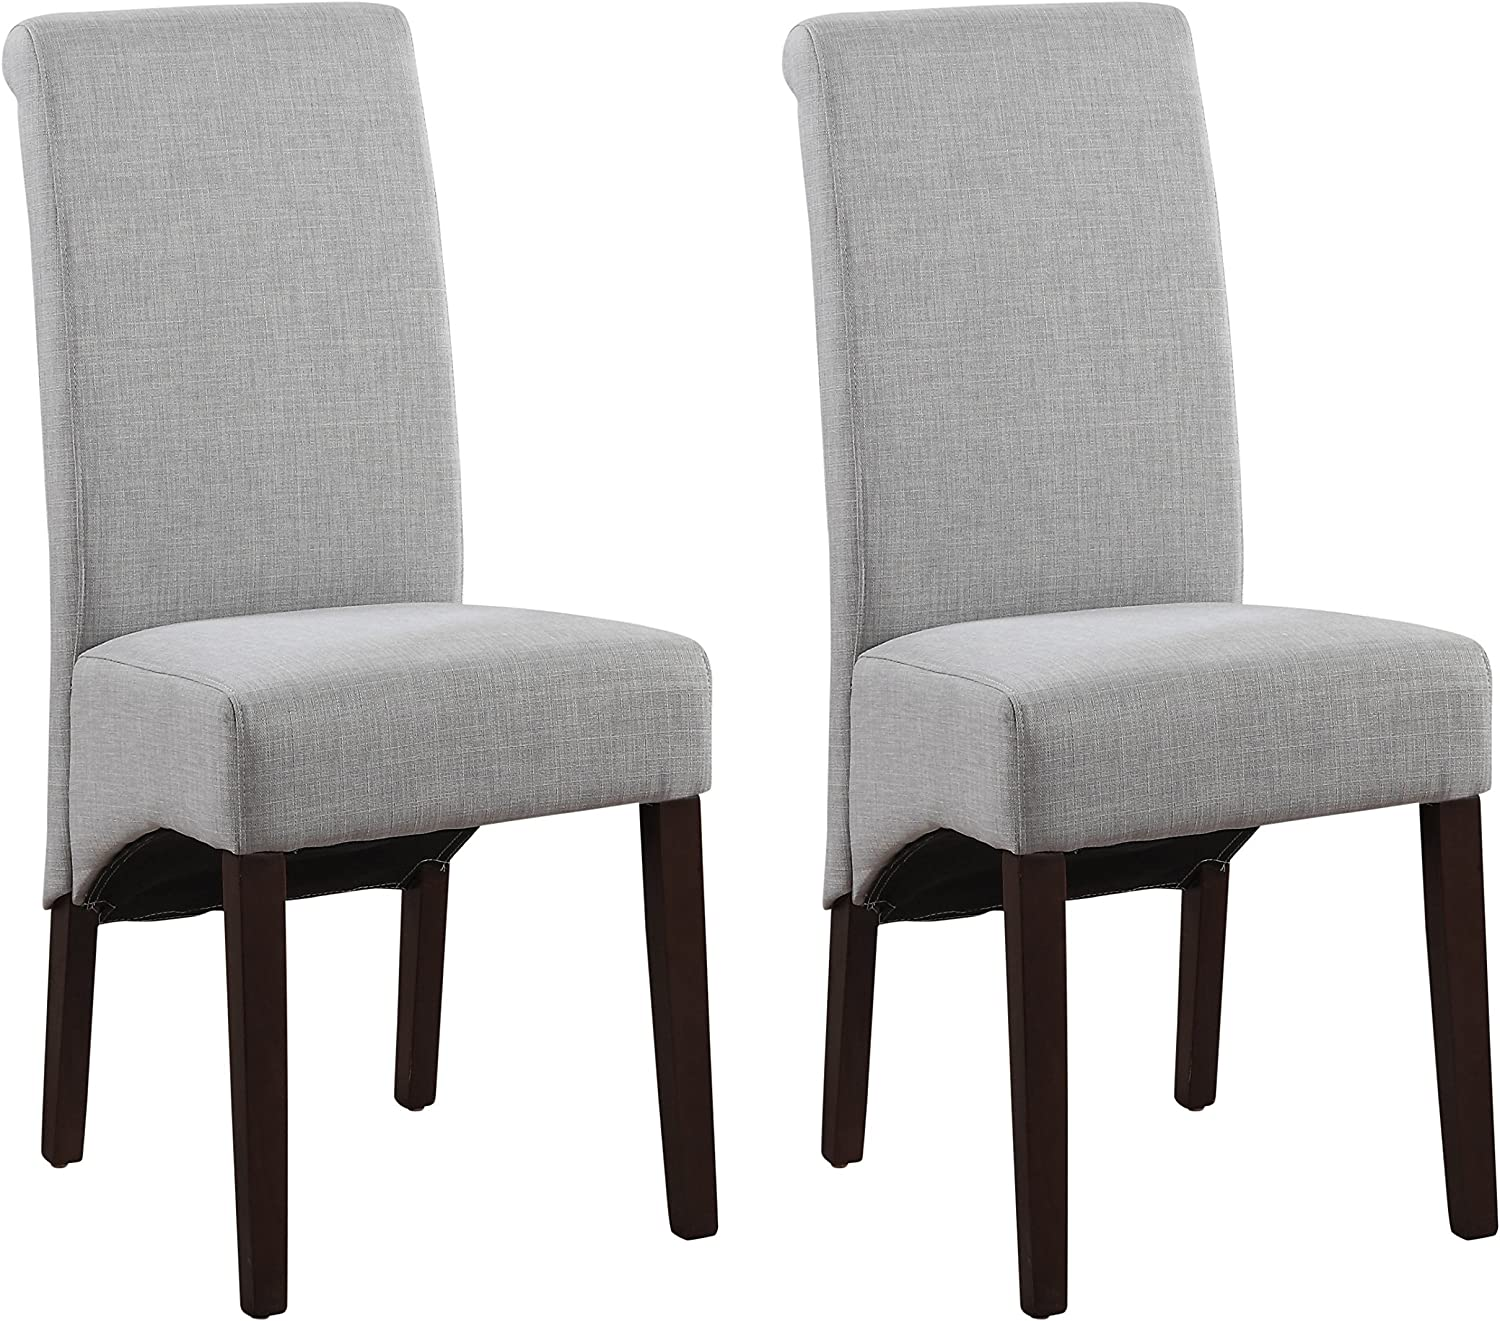 Amazon Com Simplihome Avalon Contemporary Deluxe Parson Dining Chair Set Of 2 In Dove Grey Linen Look Fabric Chairs